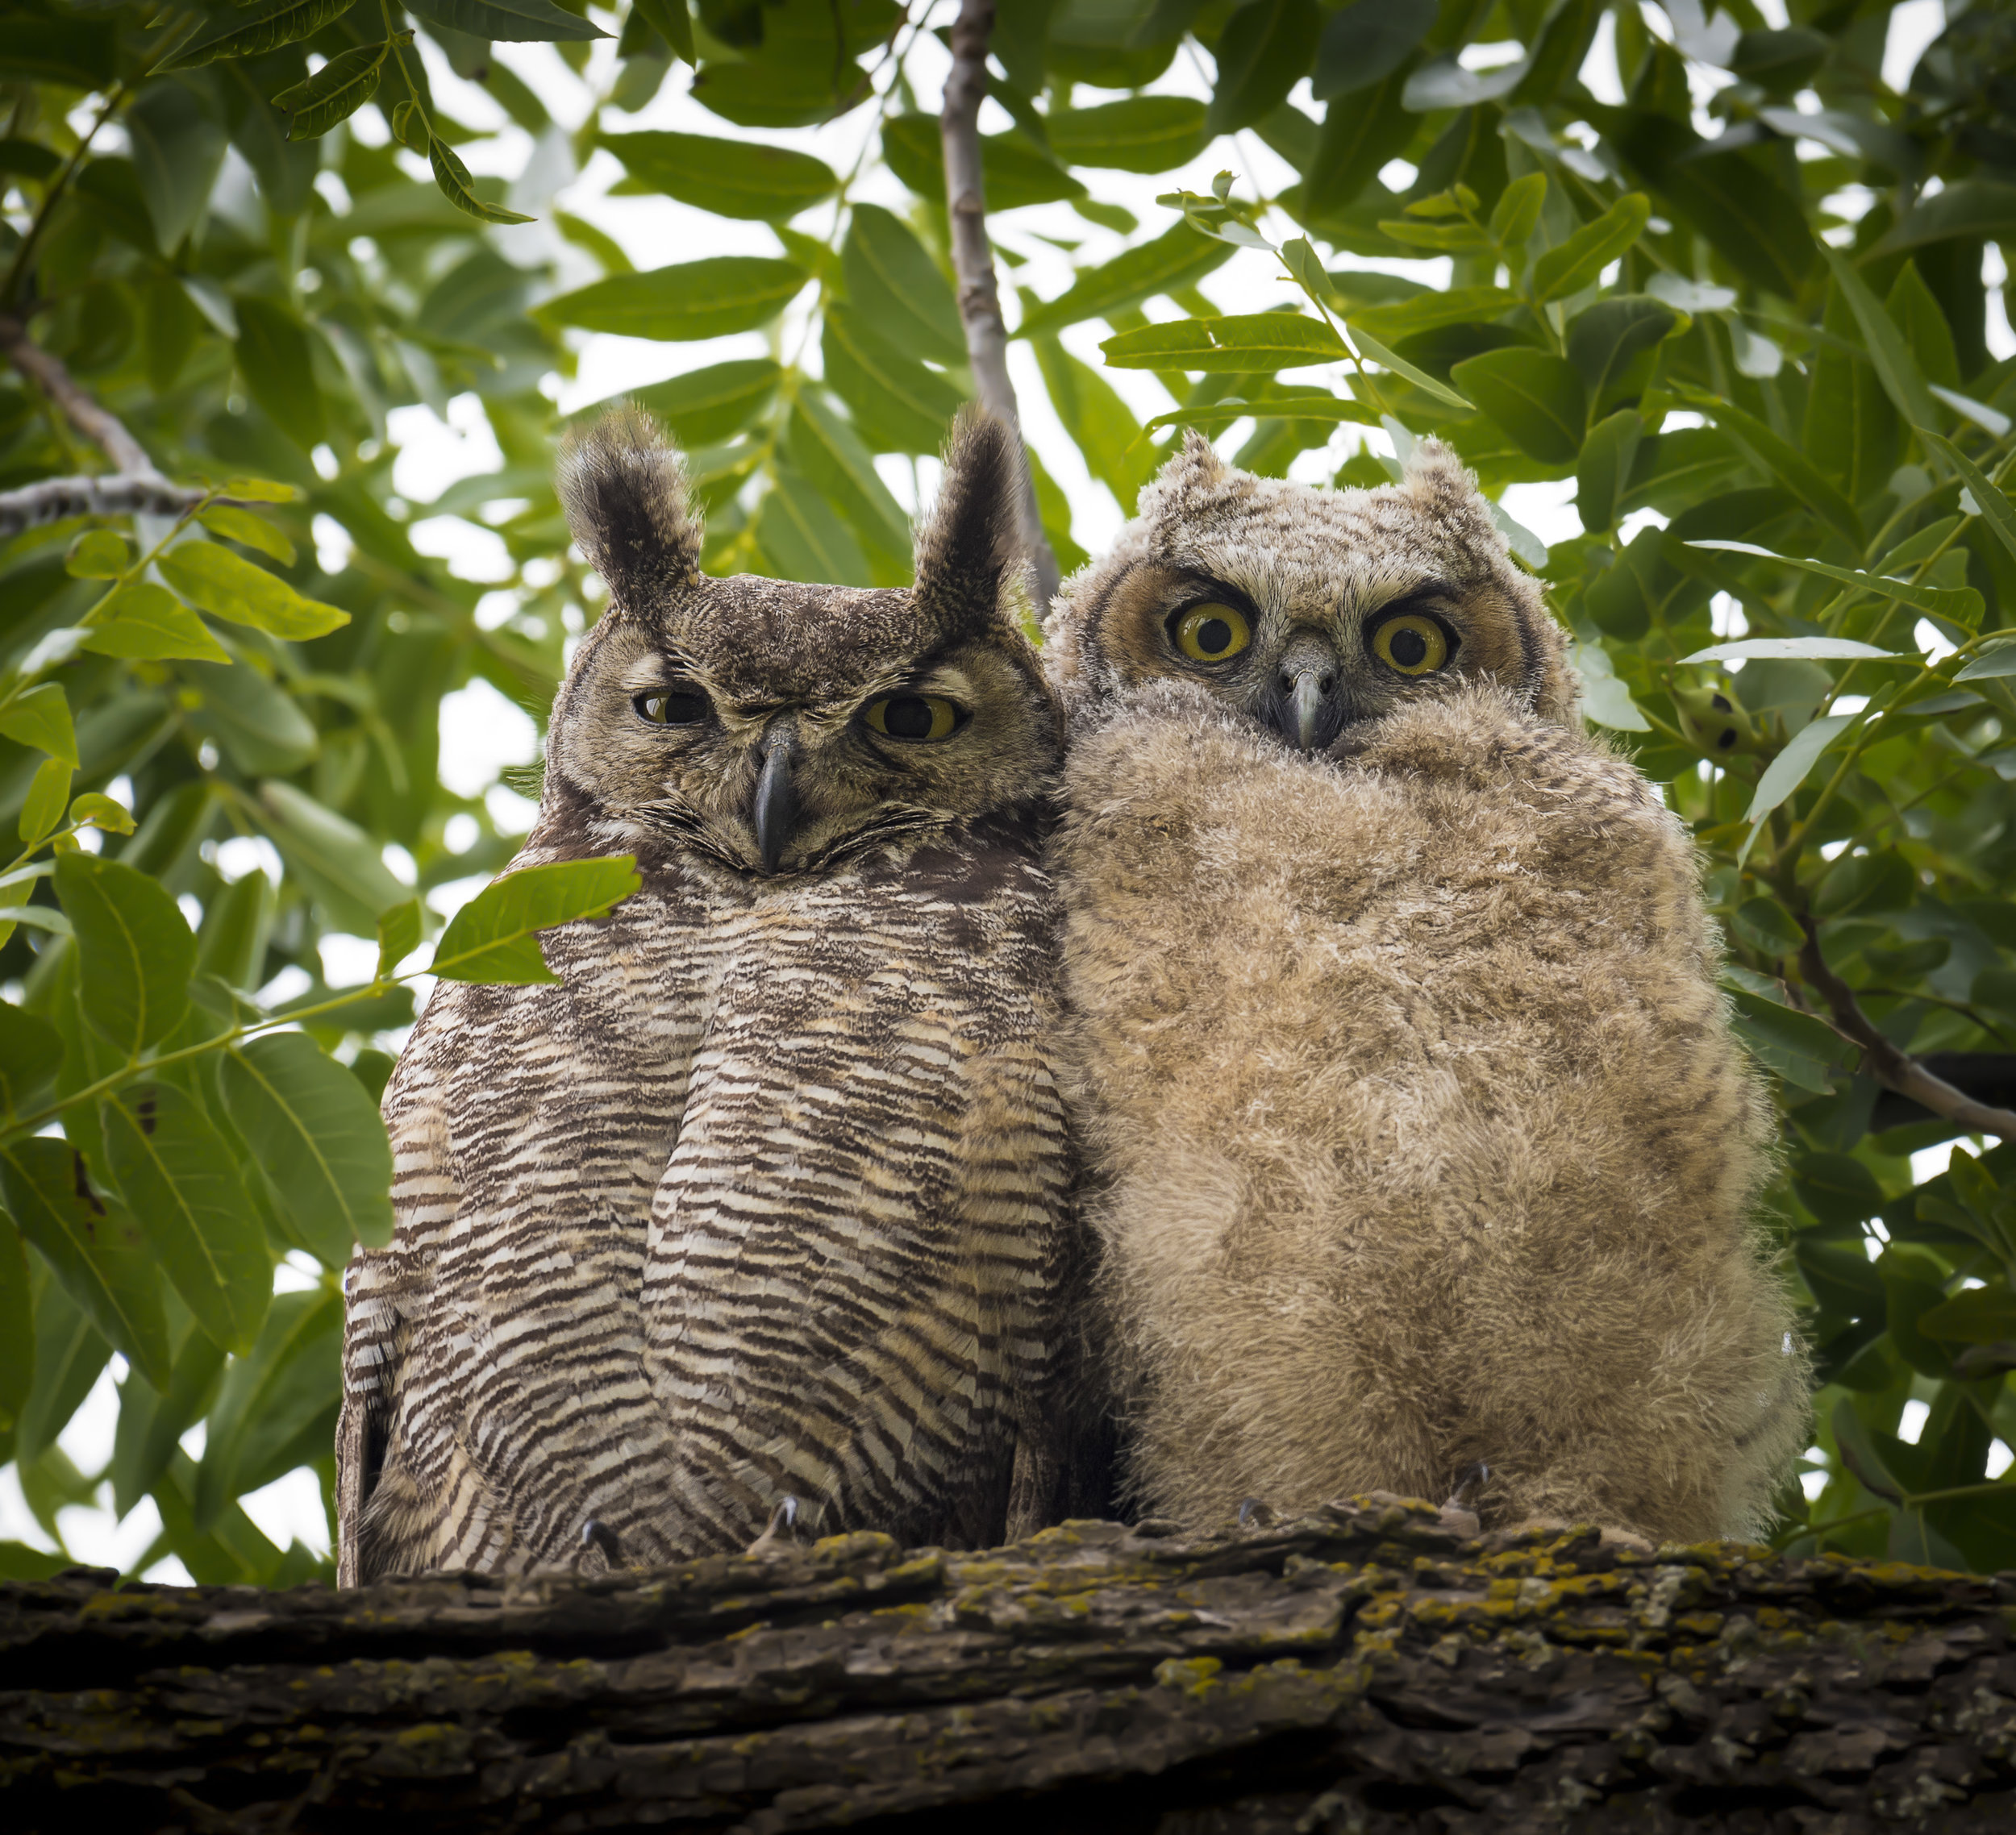 Young owl and mature owl sitting closely in a tree